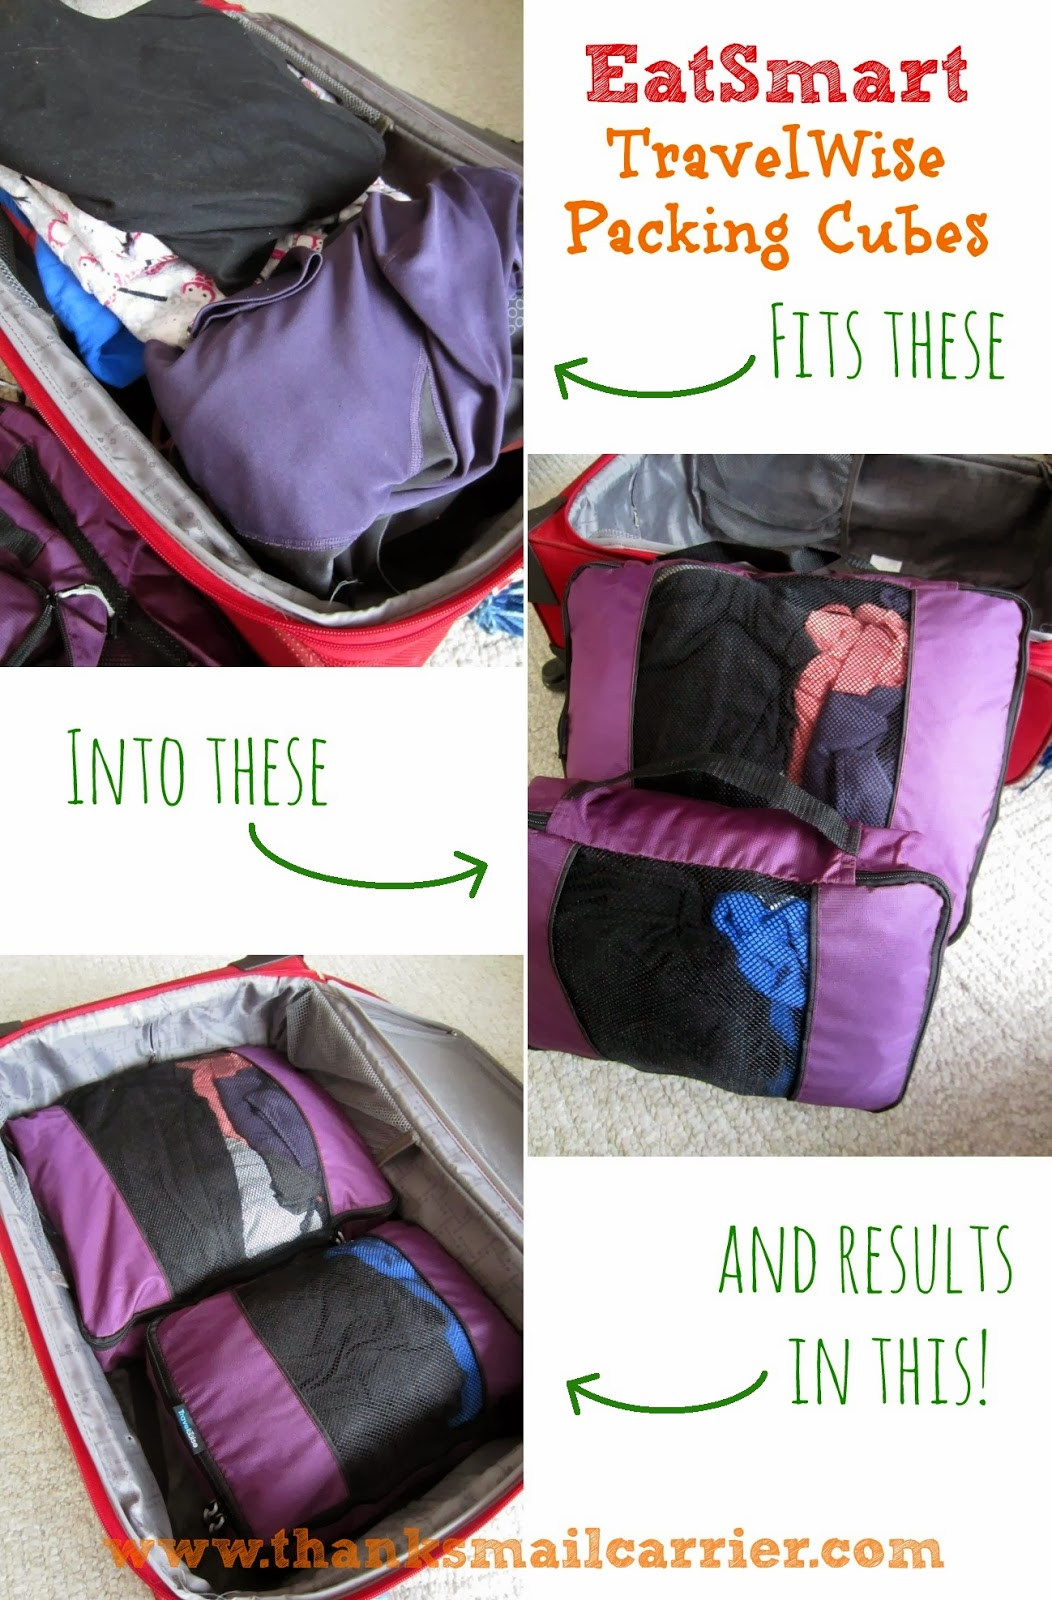 EatSmart TravelWise Packing Cubes review